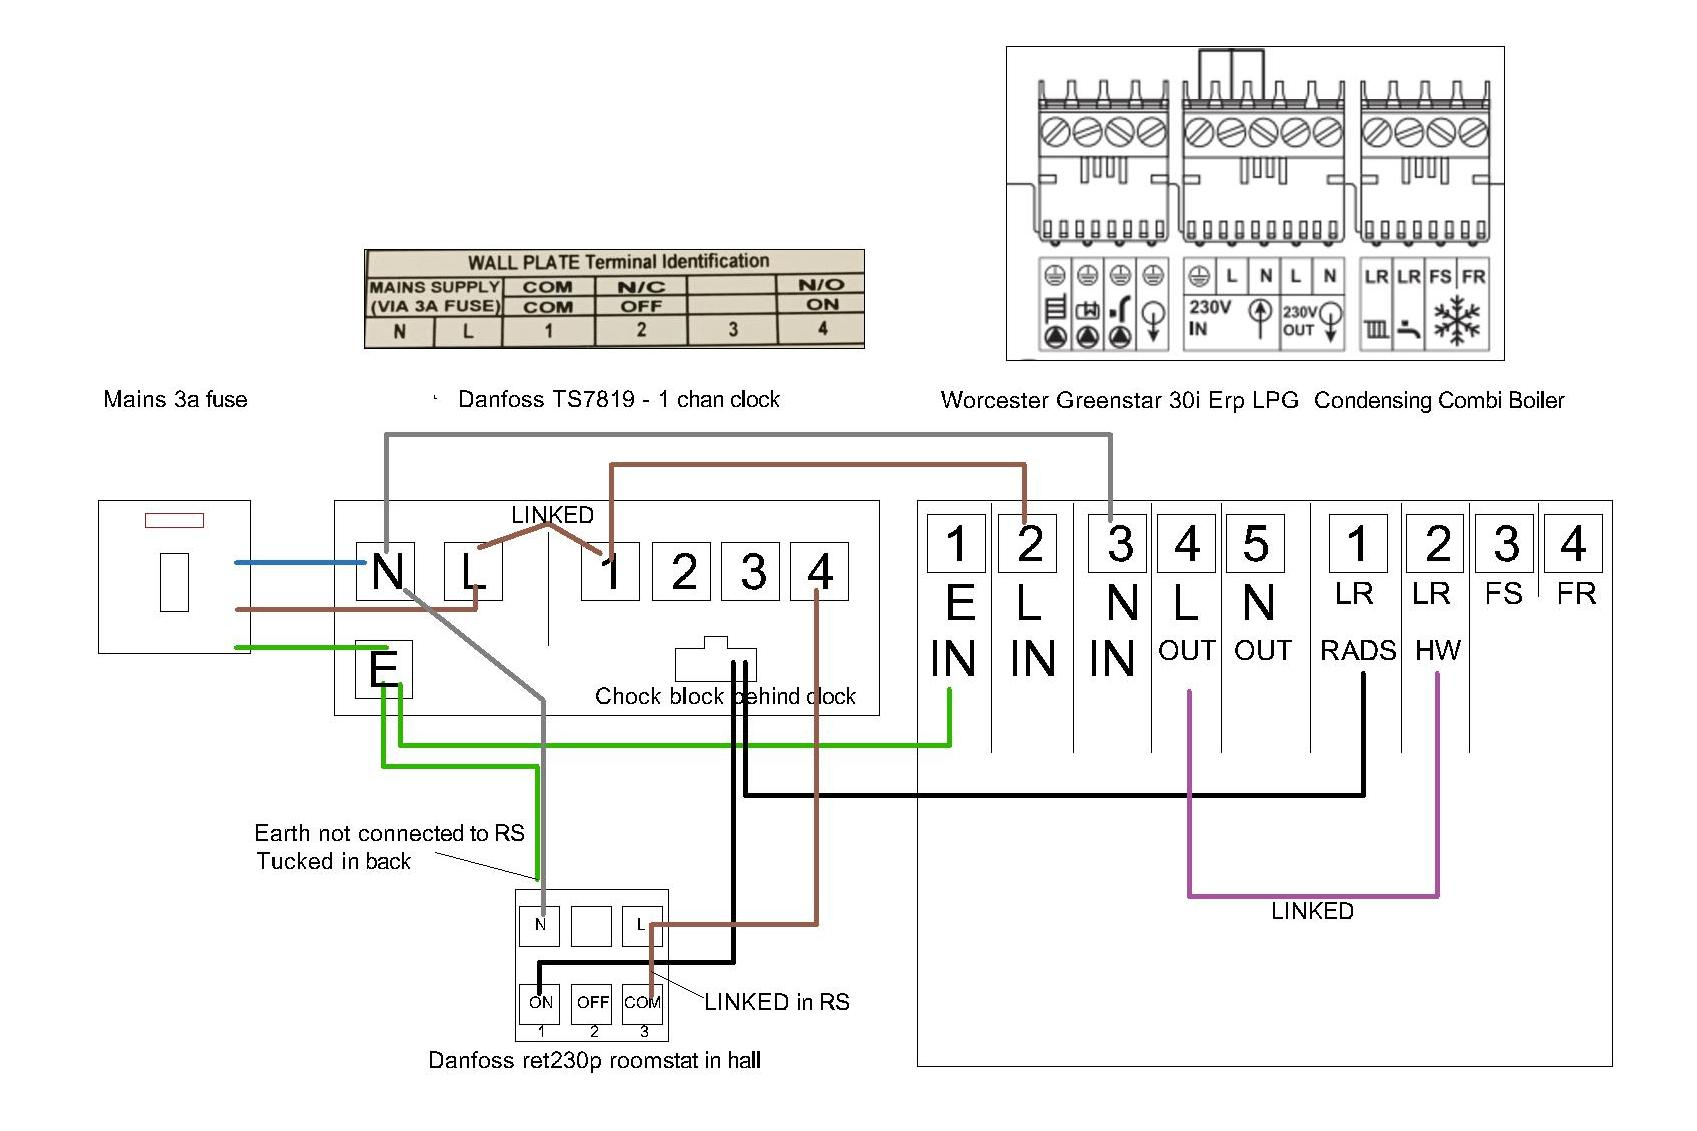 Current Boiler Diagram And Looking To Go Nest. | Diynot Forums - Nest Wiring Diagram For Boiler System